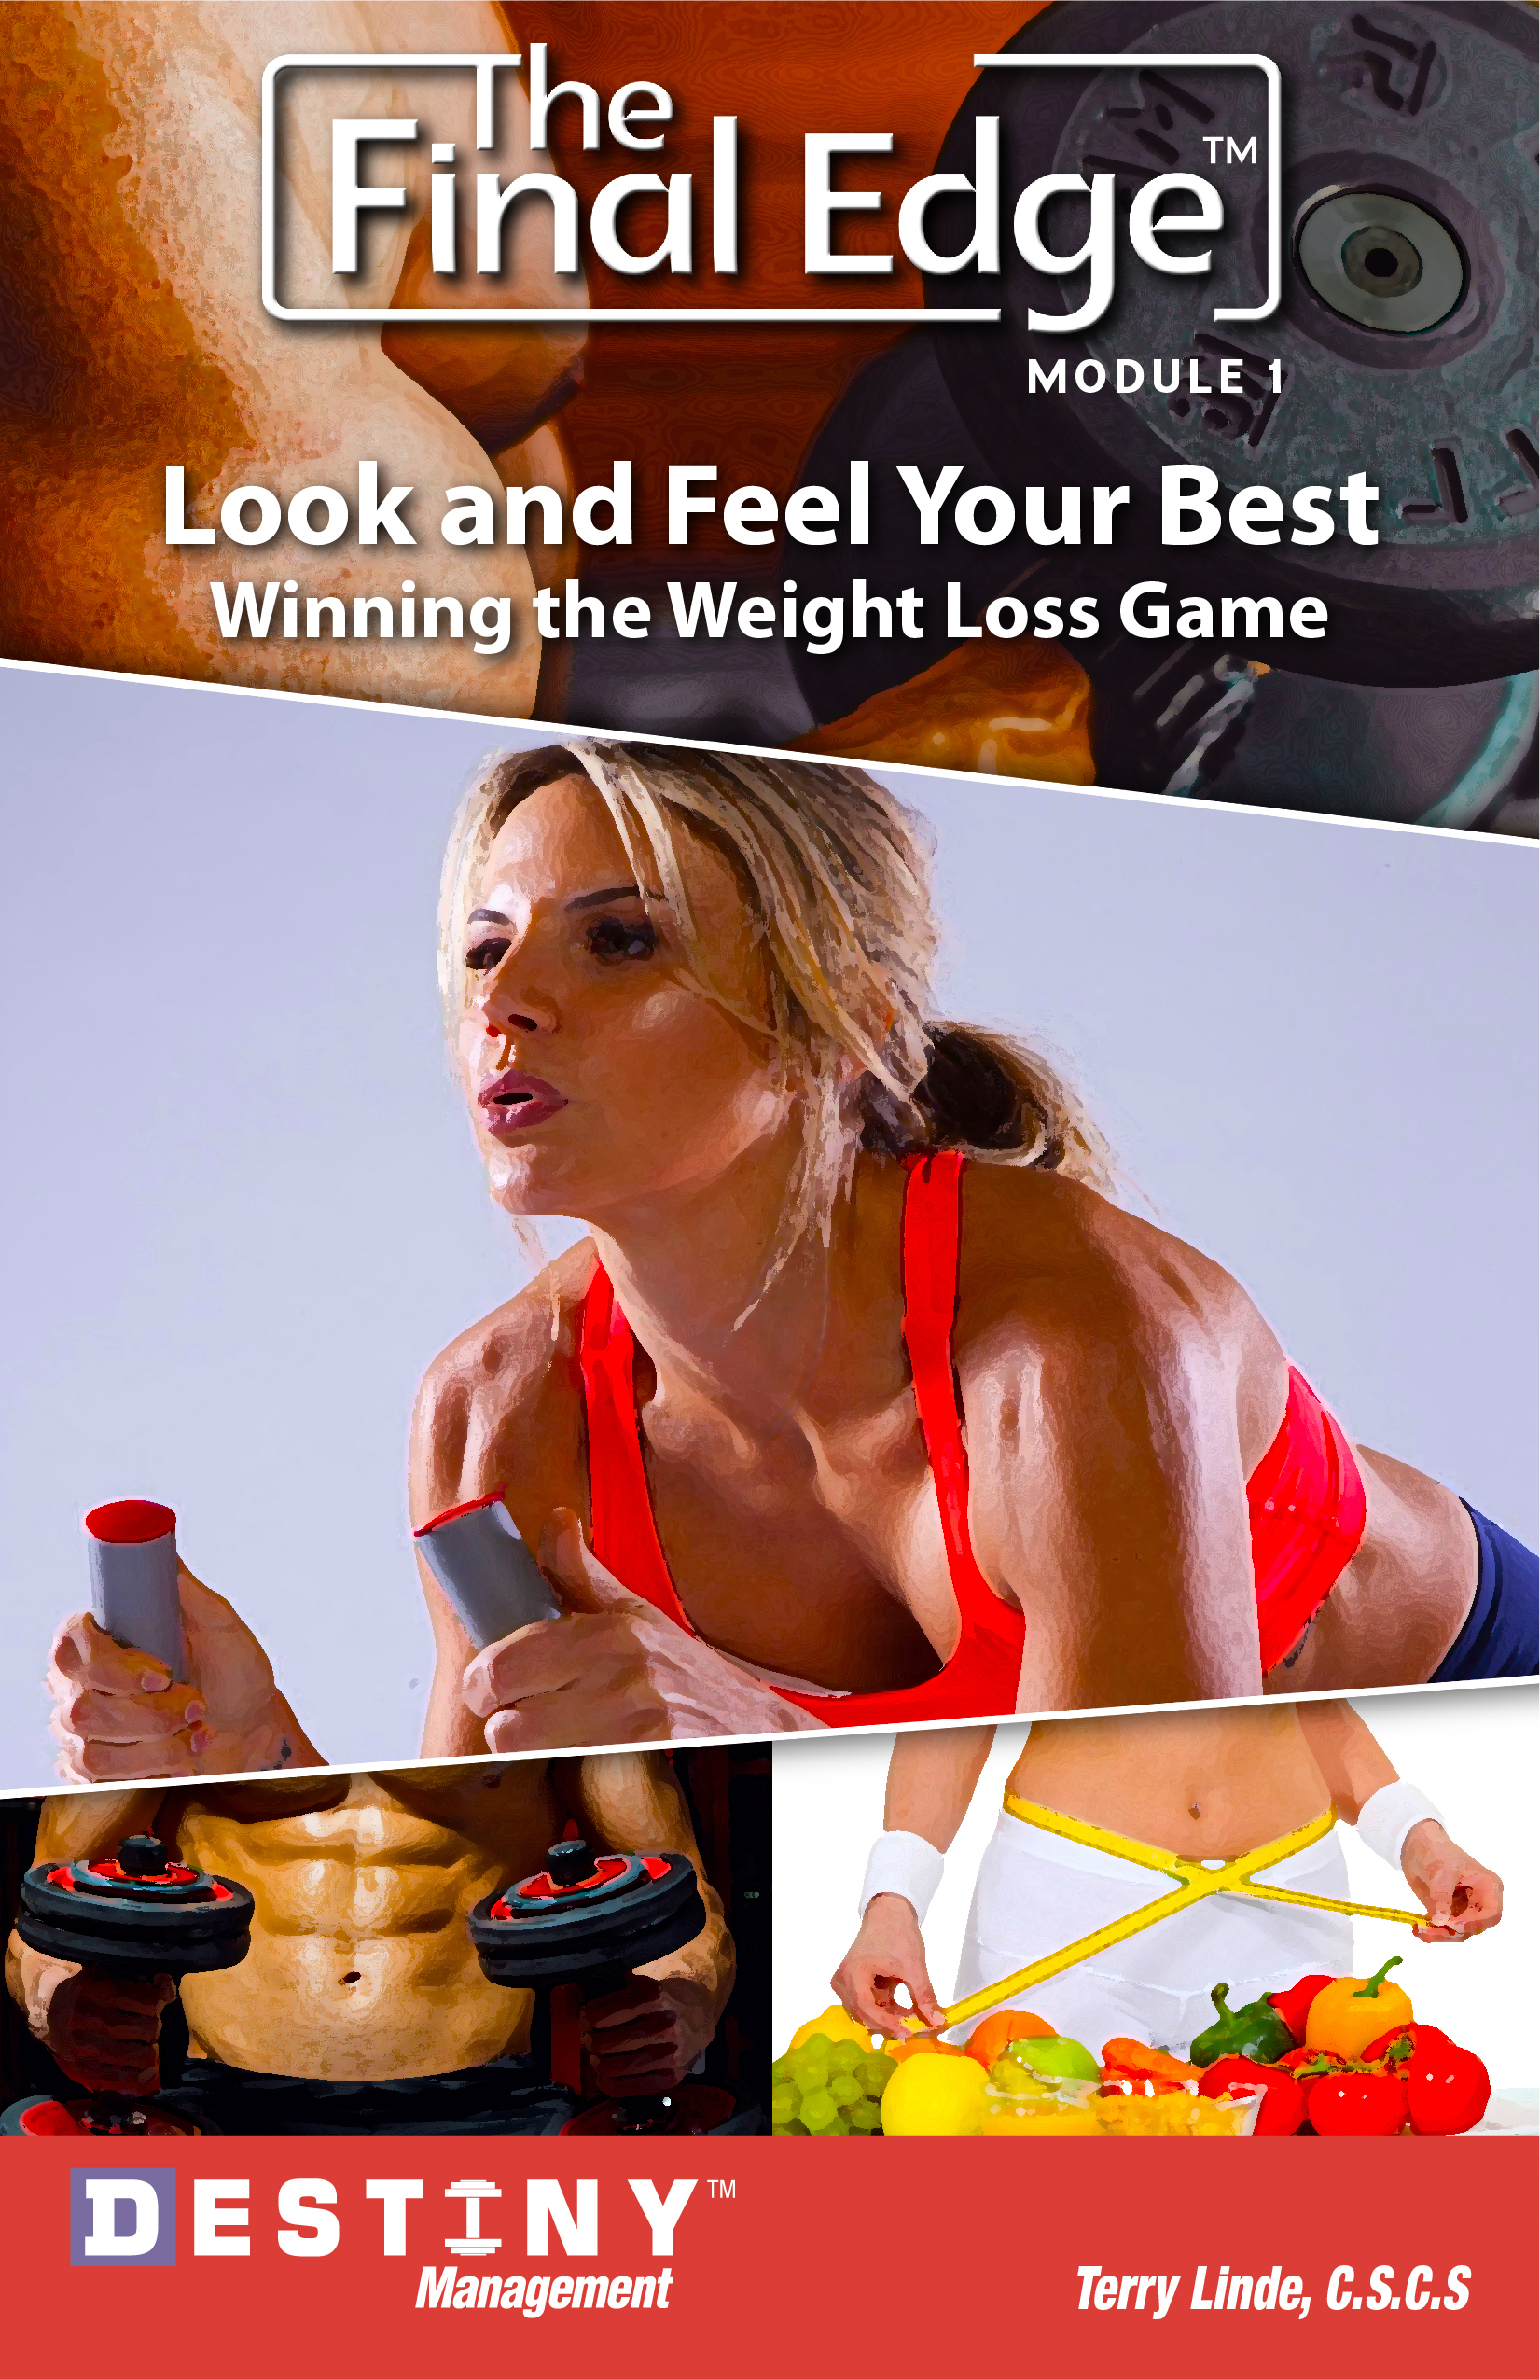 The Final Edge:  Look & Feel Your Best - Winning the Weight Loss Game